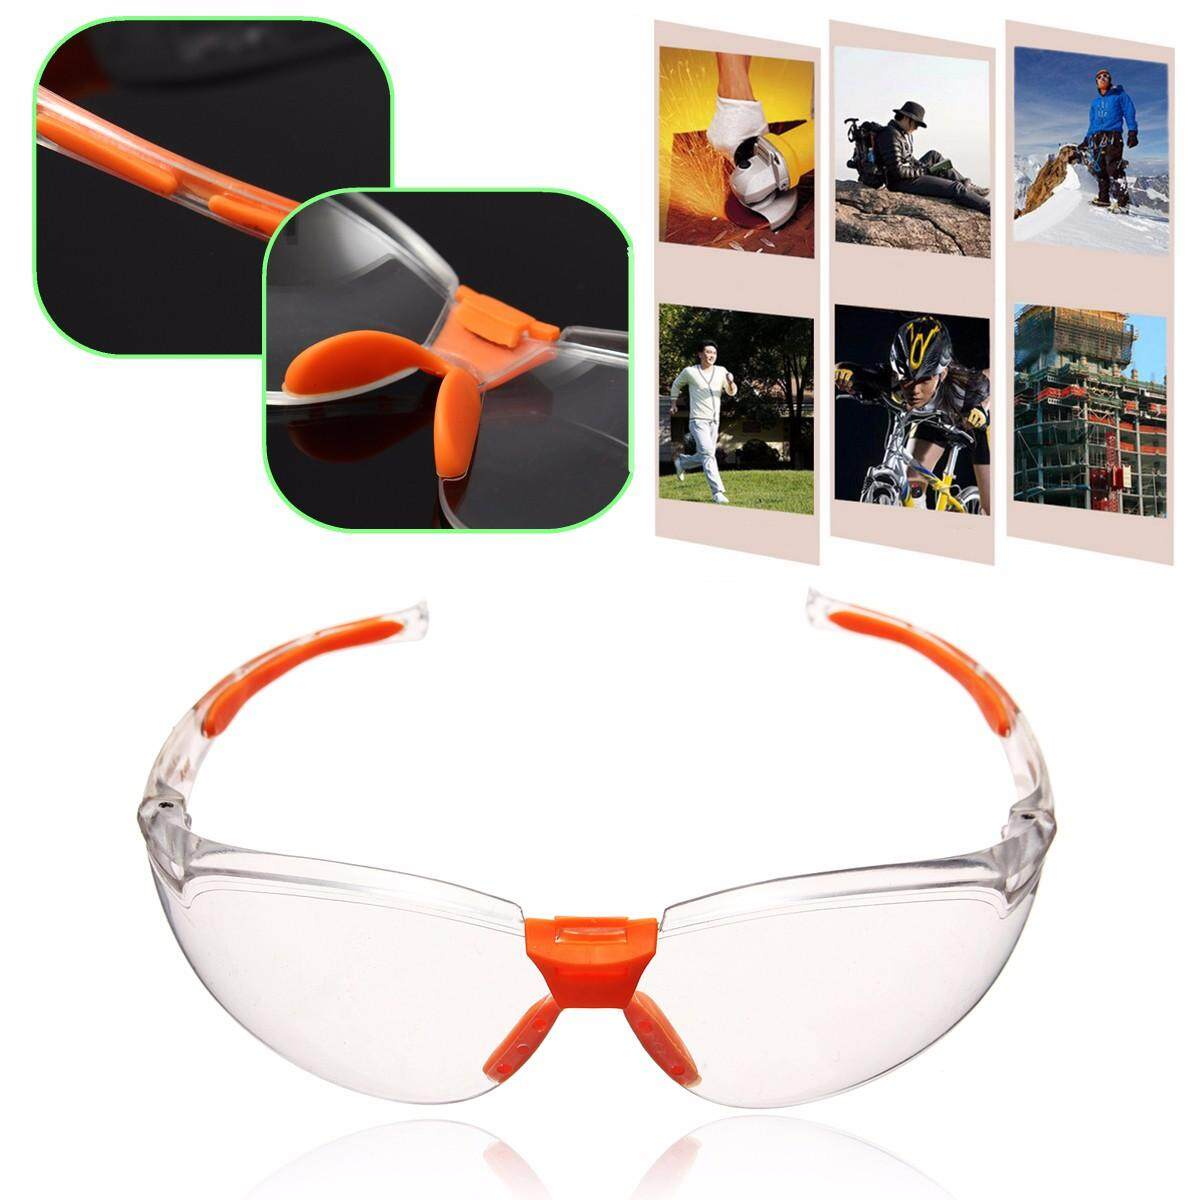 10pcs Safety Welding Cycling Riding Driving Glasses Sports Sunglasses Protect Goggles